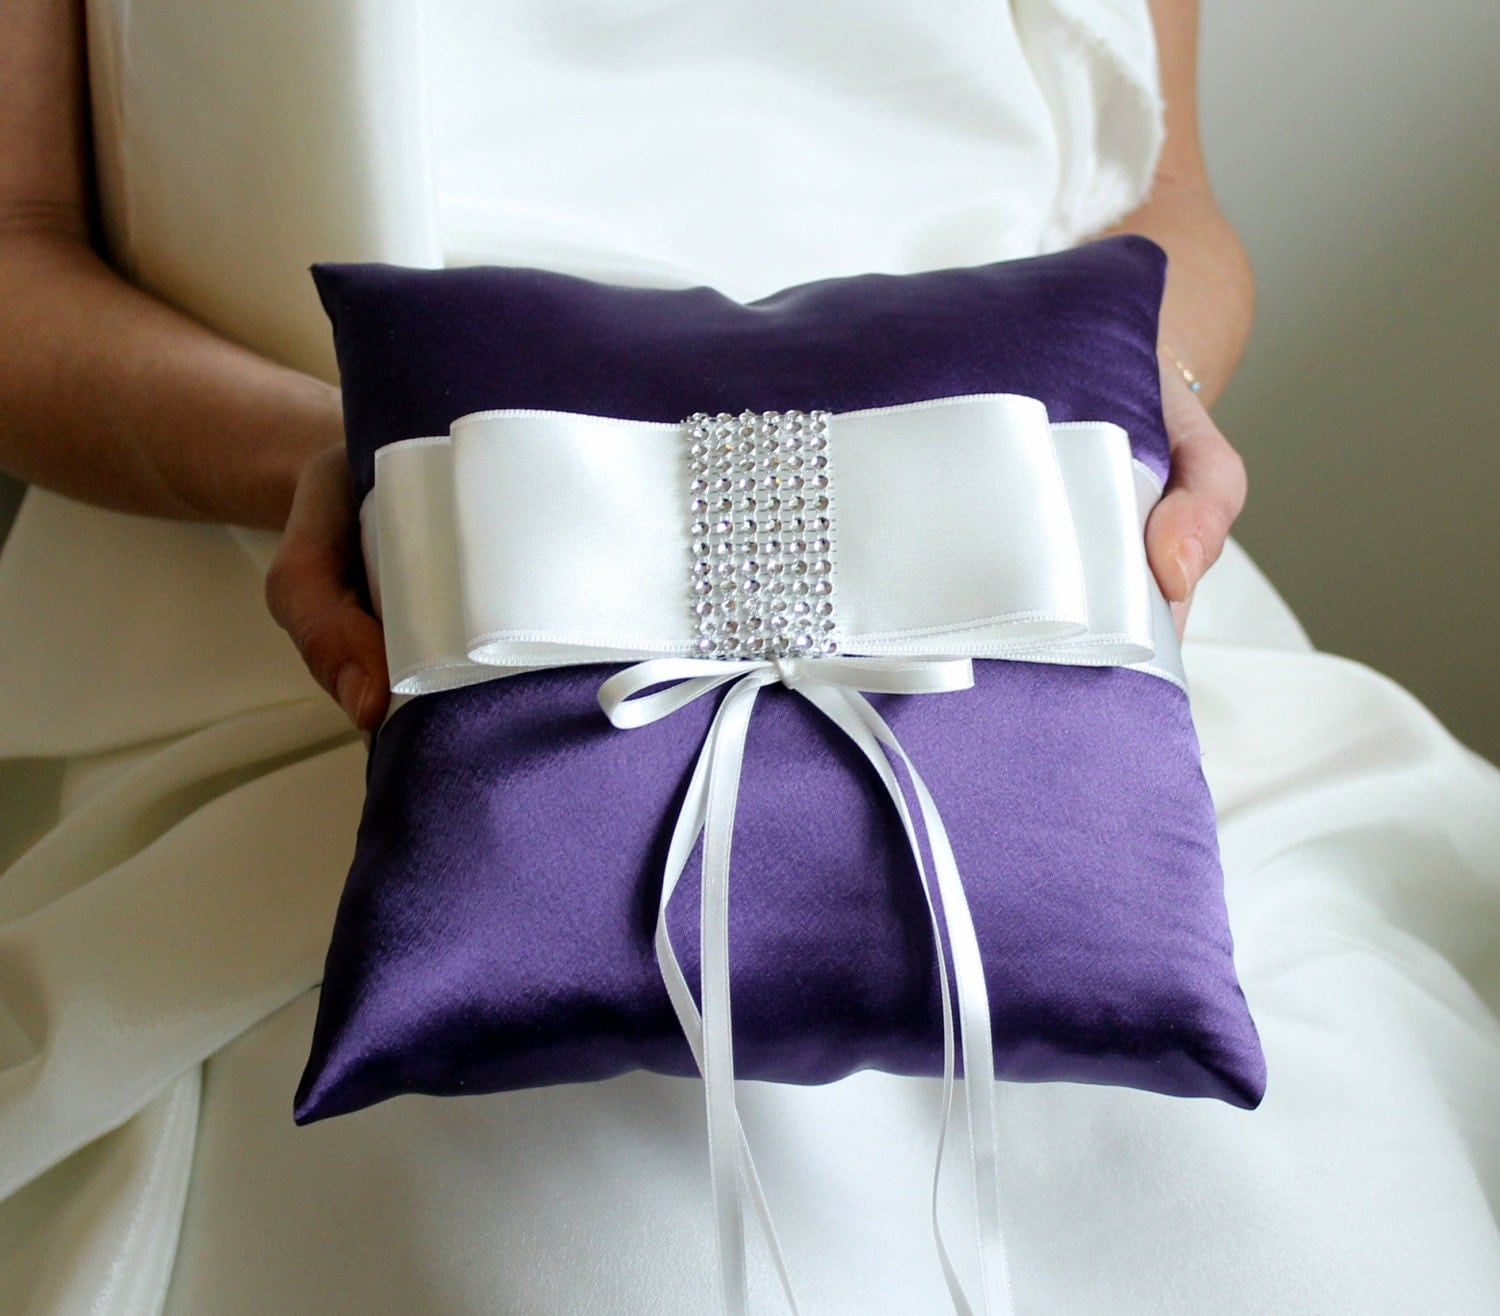 BIG OPENING SALE / Bridal Ring Bearer Pillow - Violet Purple white -Bridal / Bride / Marriage / engagement, wedding, anniversary